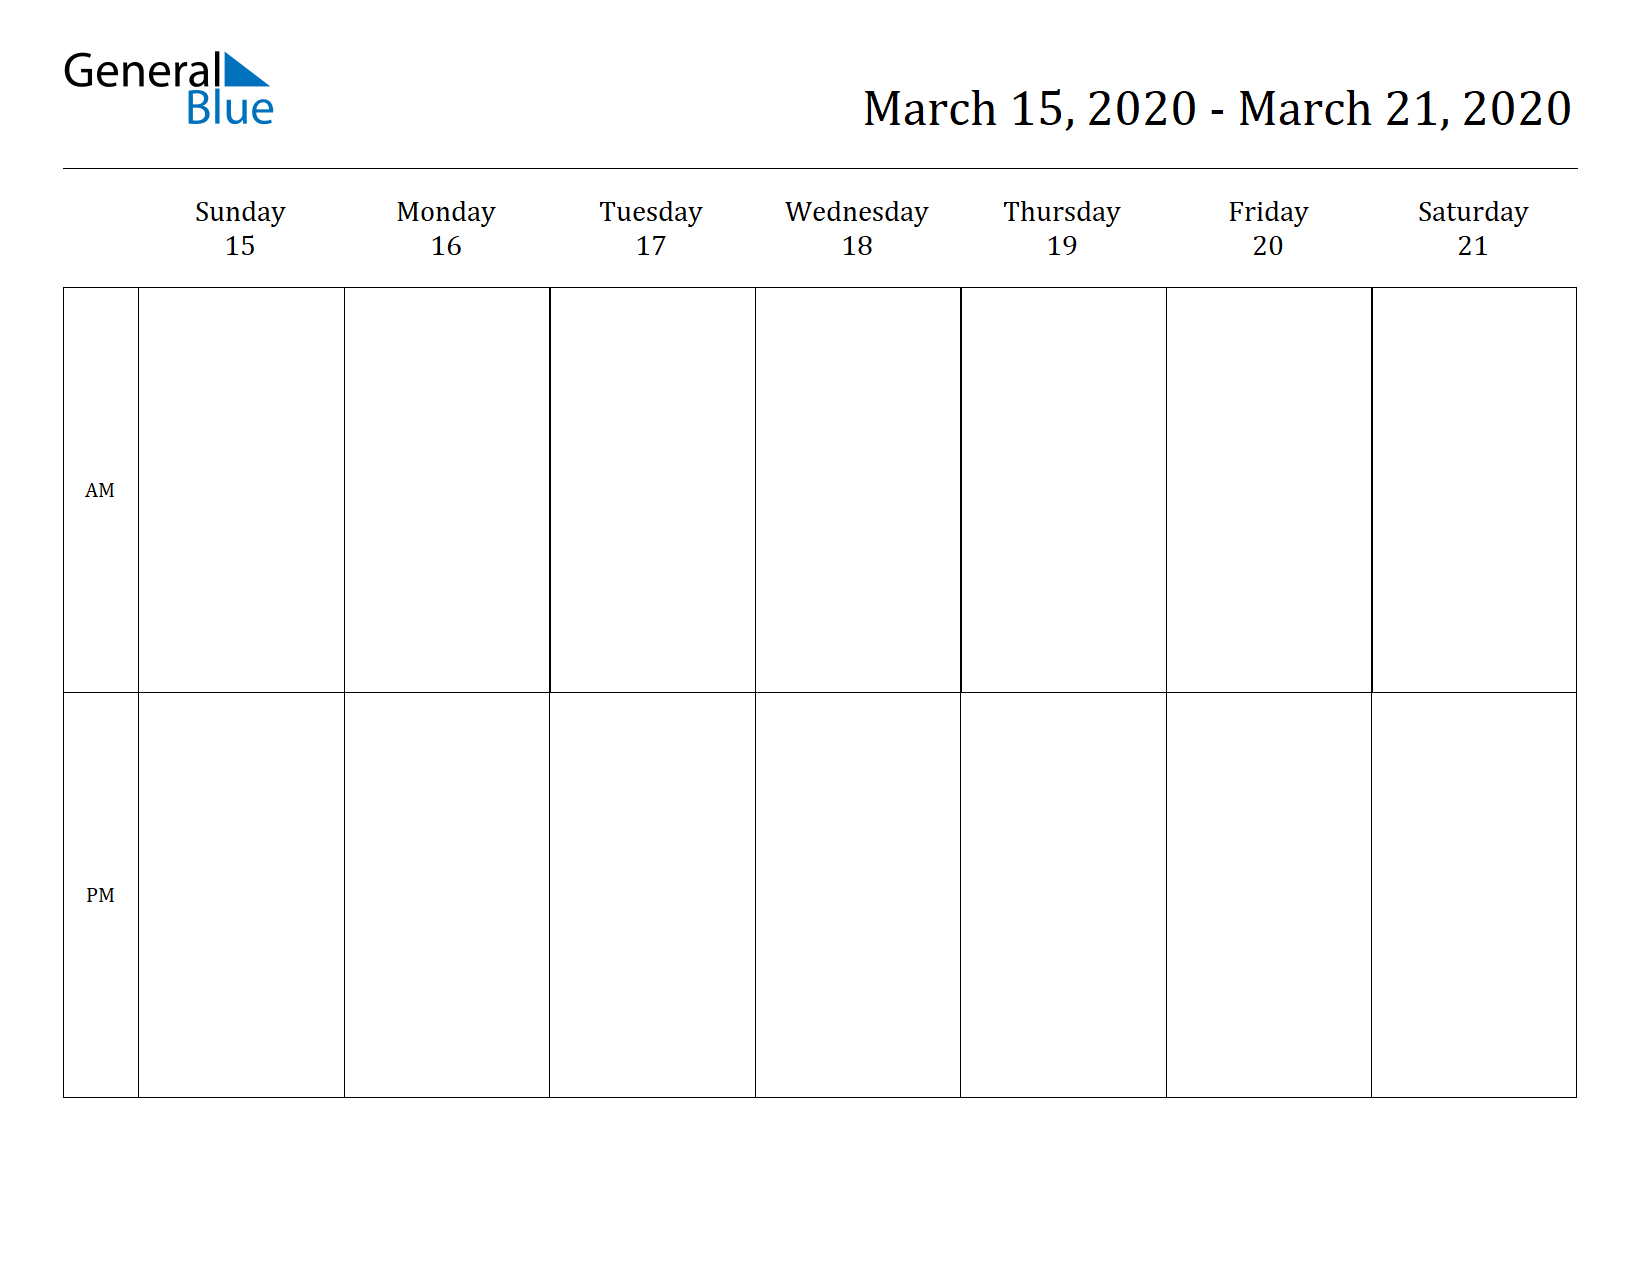 Weekly Calendar for Mar 15, 2020 to Mar 21, 2020